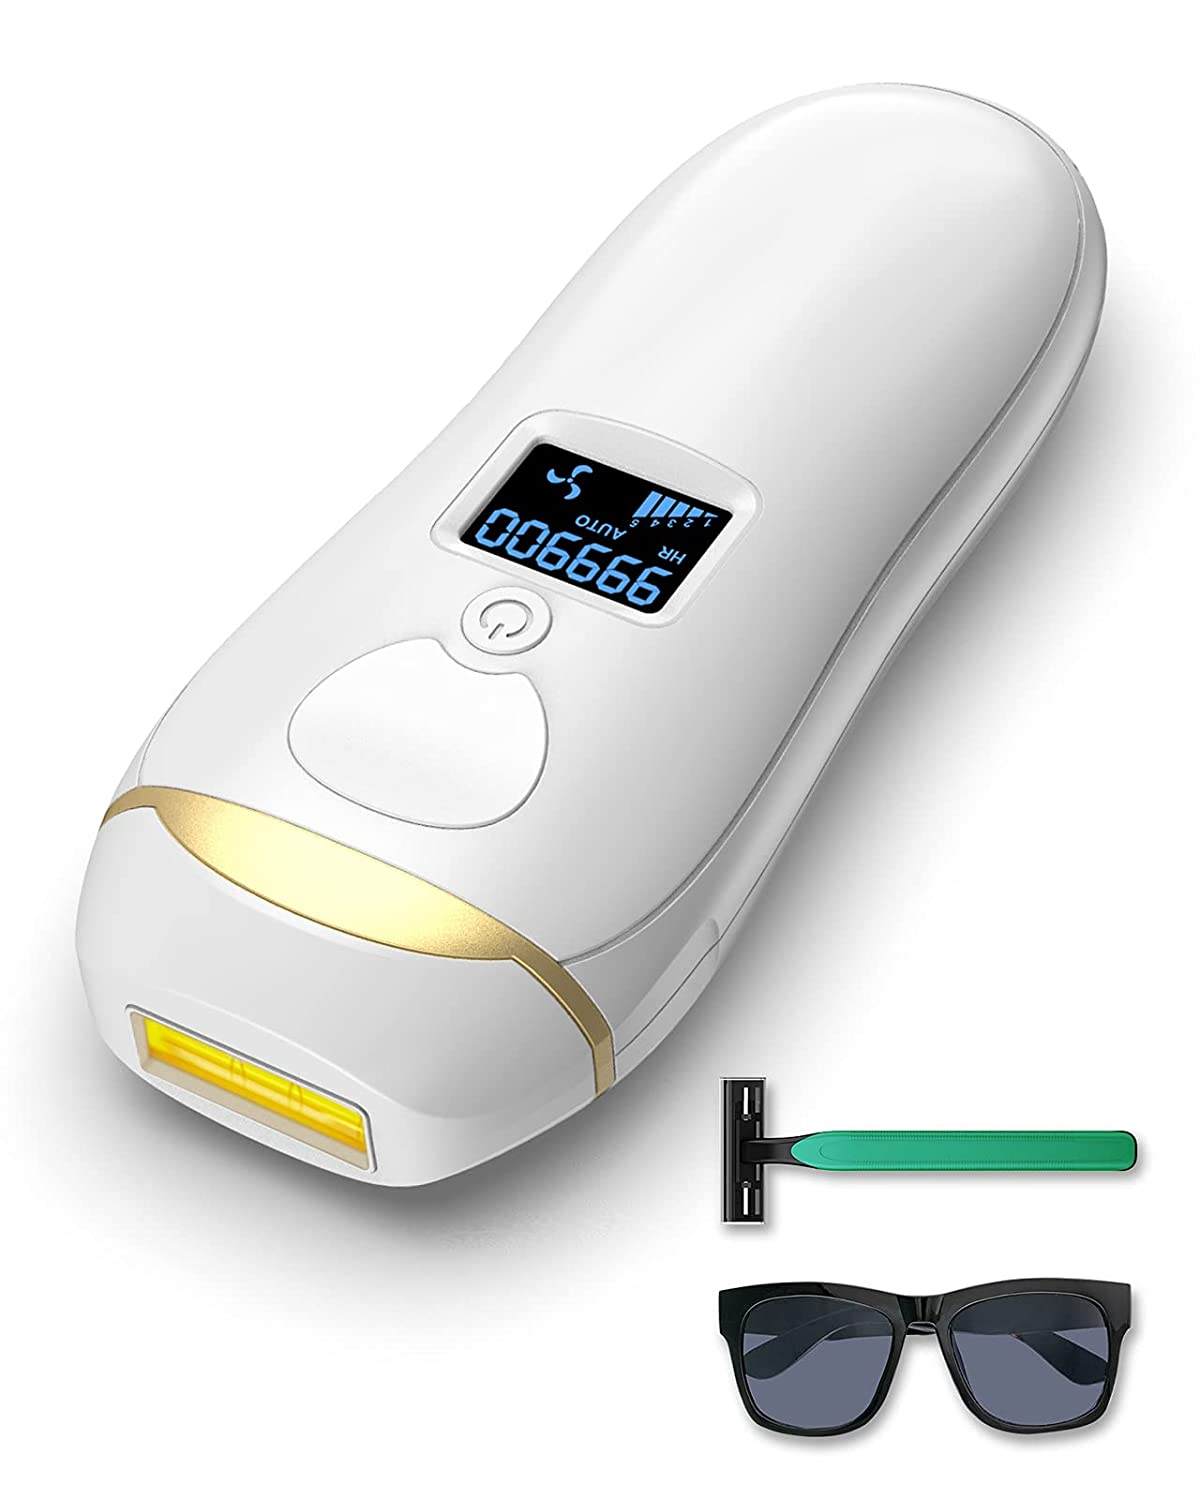 At Home Laser Hair Removal for Women Men, BAIVON Painless Permanent IPL Hair Remover System for Whole Body, Upgrade 999,900 Flashes